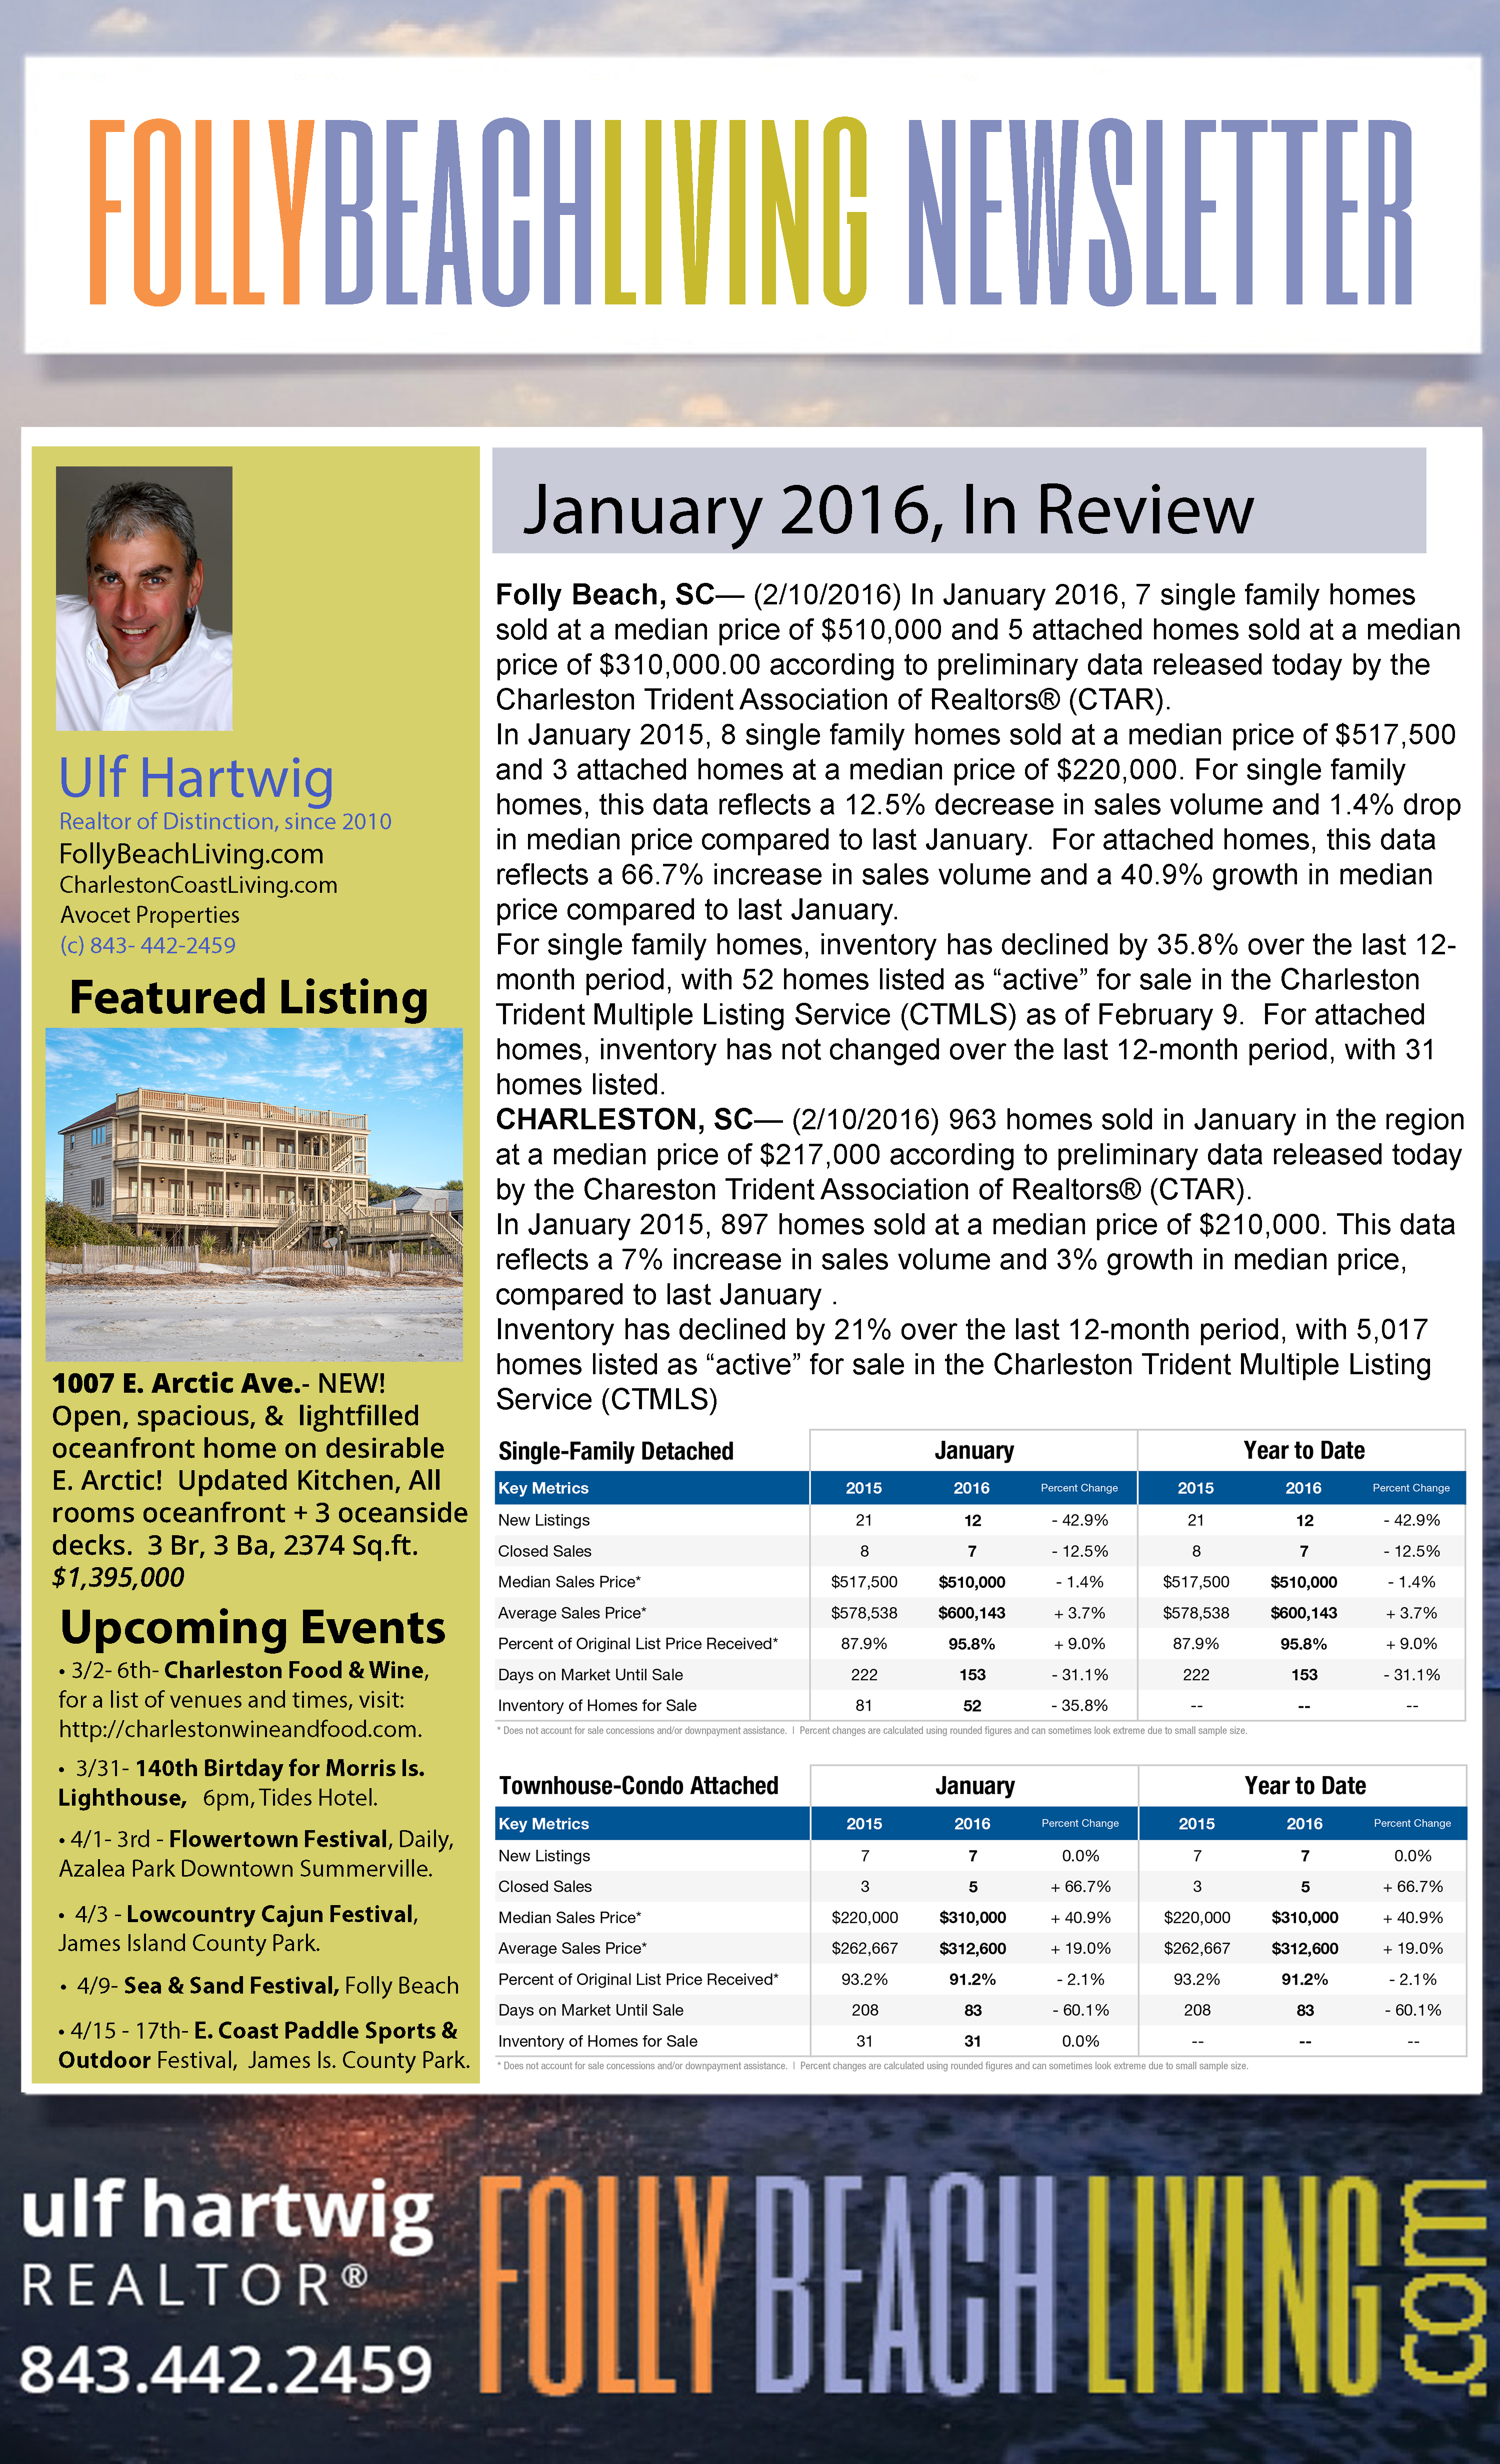 February 2016 Folly Beach Living Newsletter